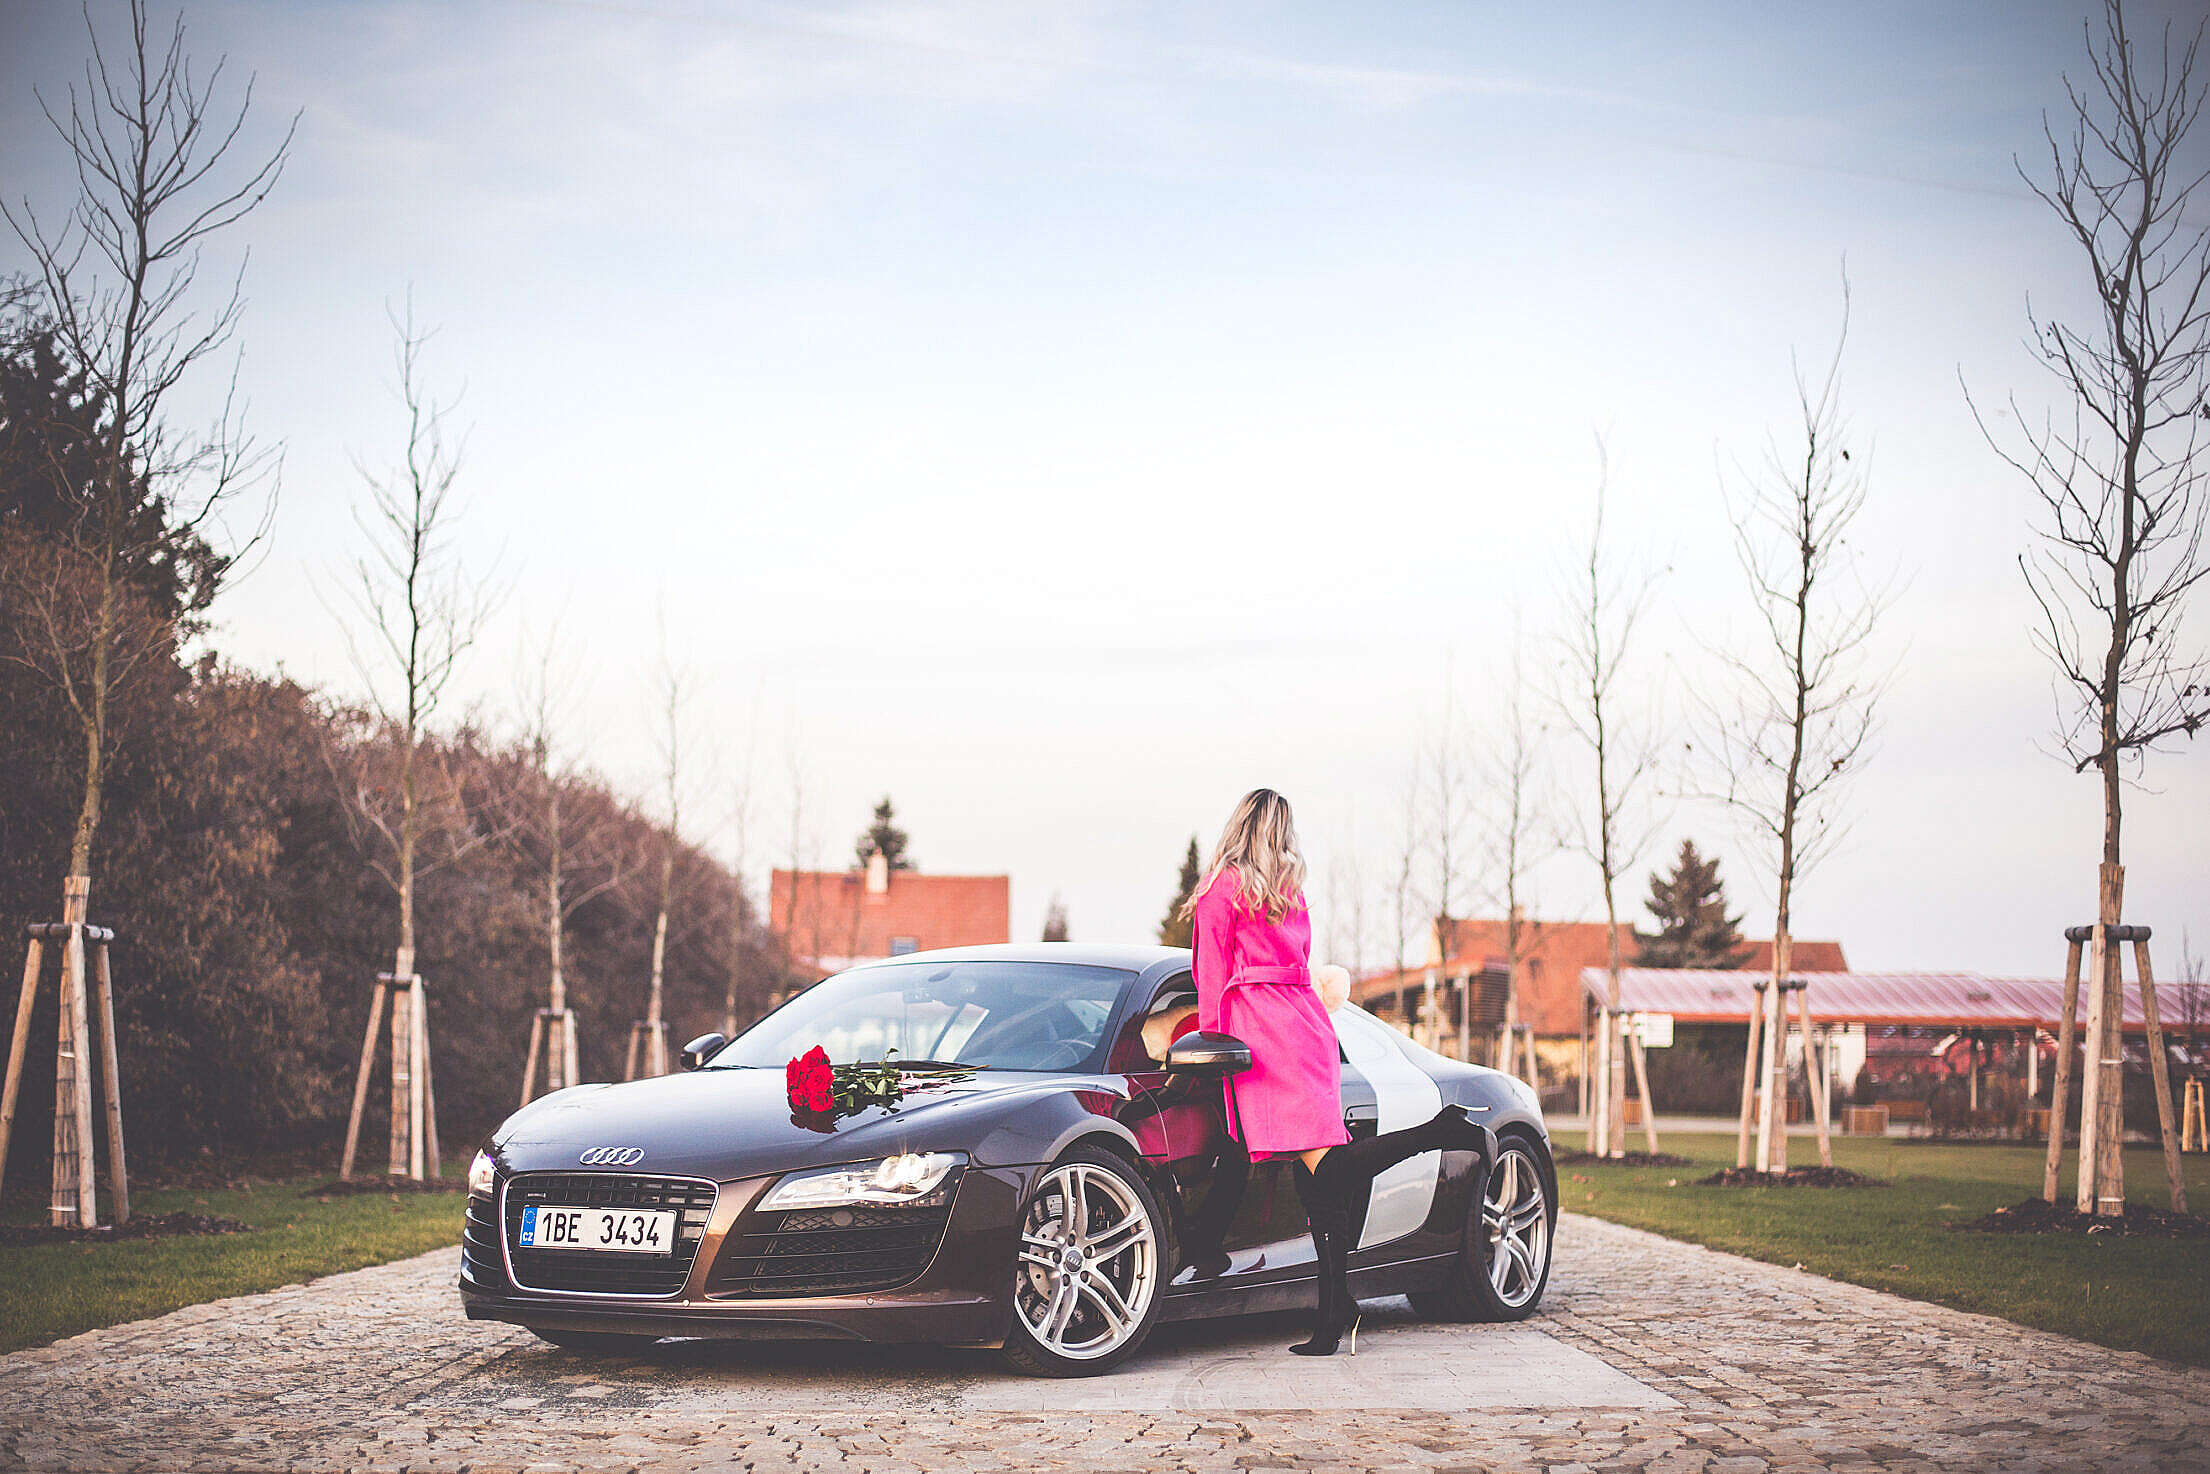 Woman in Pink Coat Standing Next To a Supercar Free Stock Photo